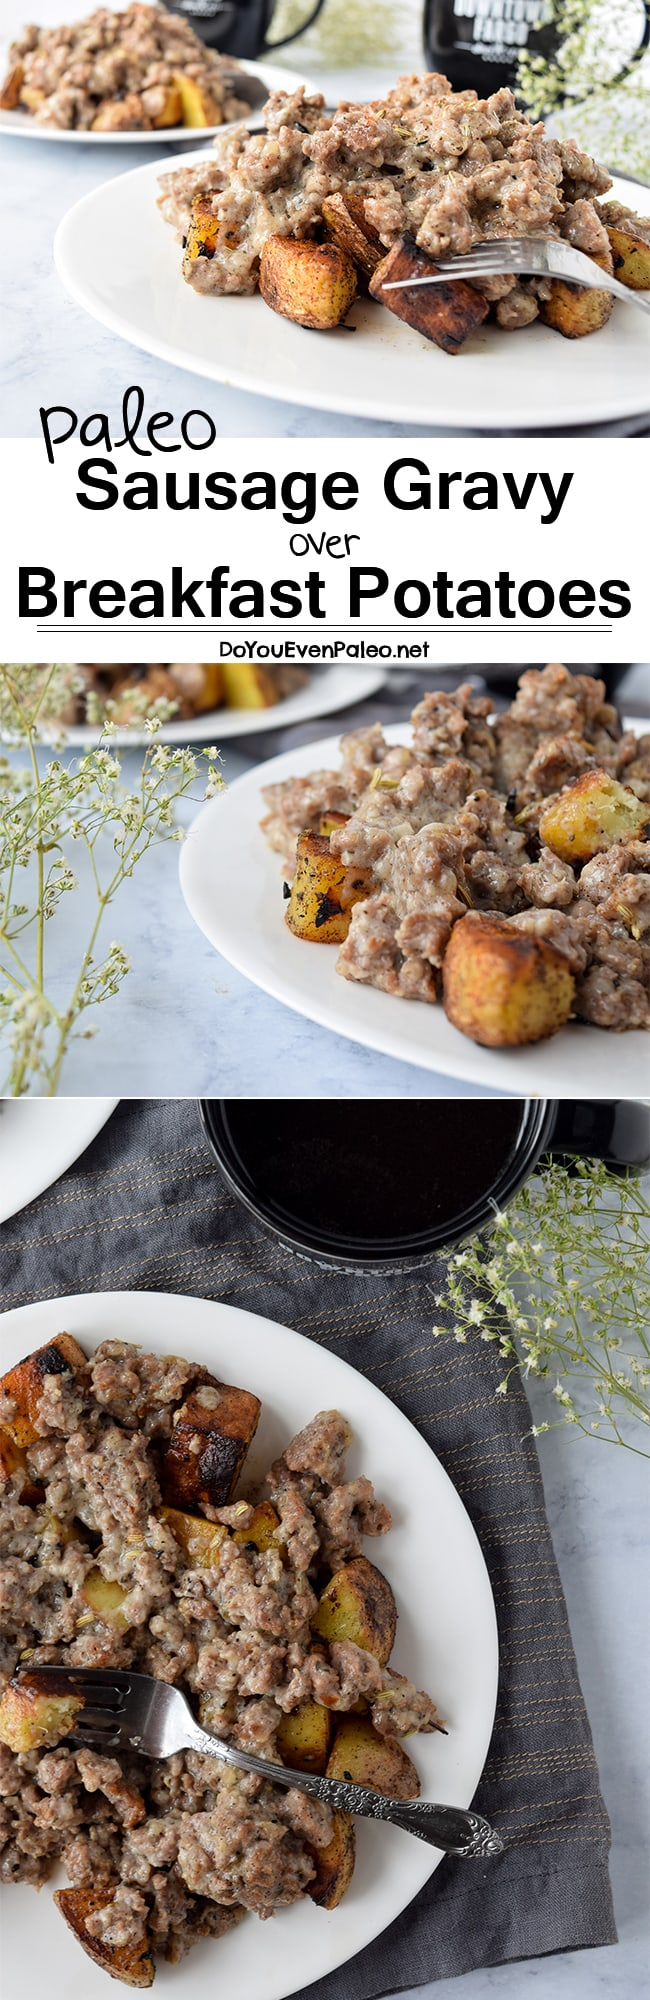 Homemade Paleo Sausage Gravy over Breakfast Potatoes - a hearty gluten free breakfast for two! | DoYouEvenPaleo.net